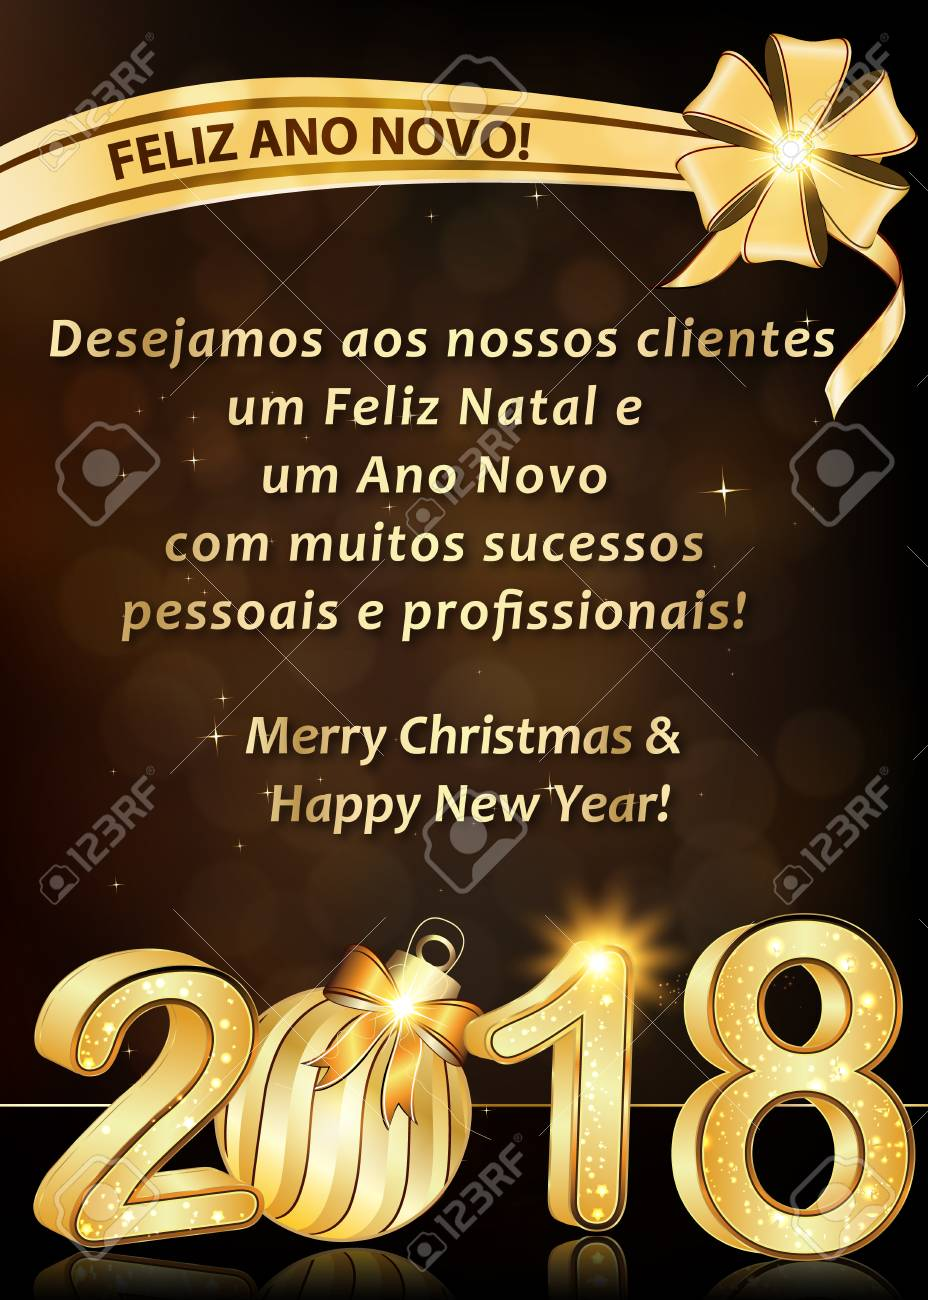 Portuguese Greeting Card For Winter Holidays 2018 Text Translation